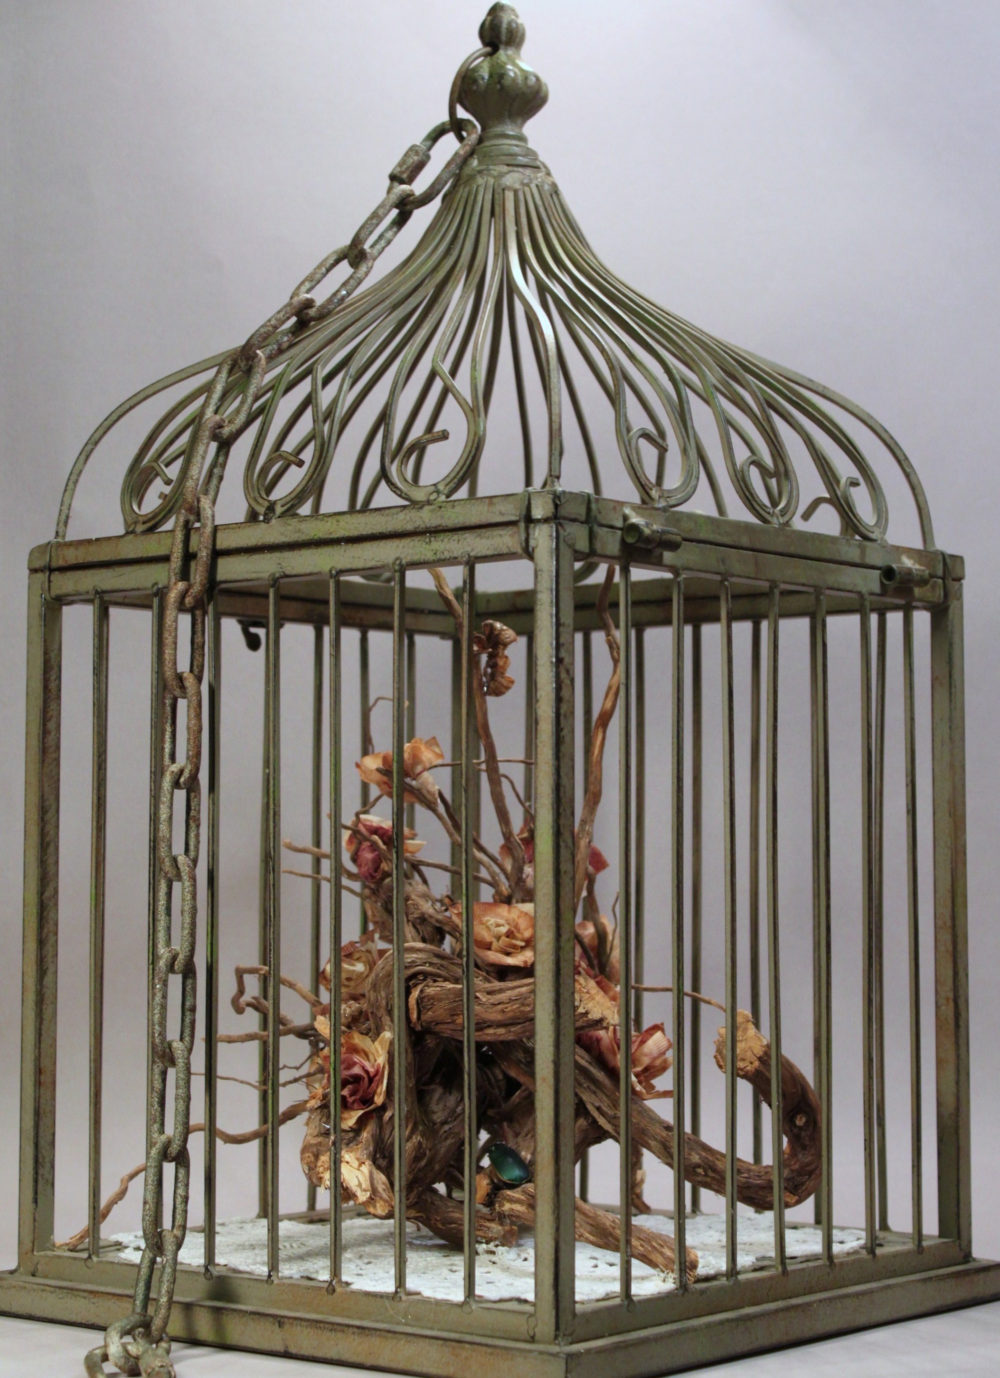 Dried roses arranged in a metal bird cage